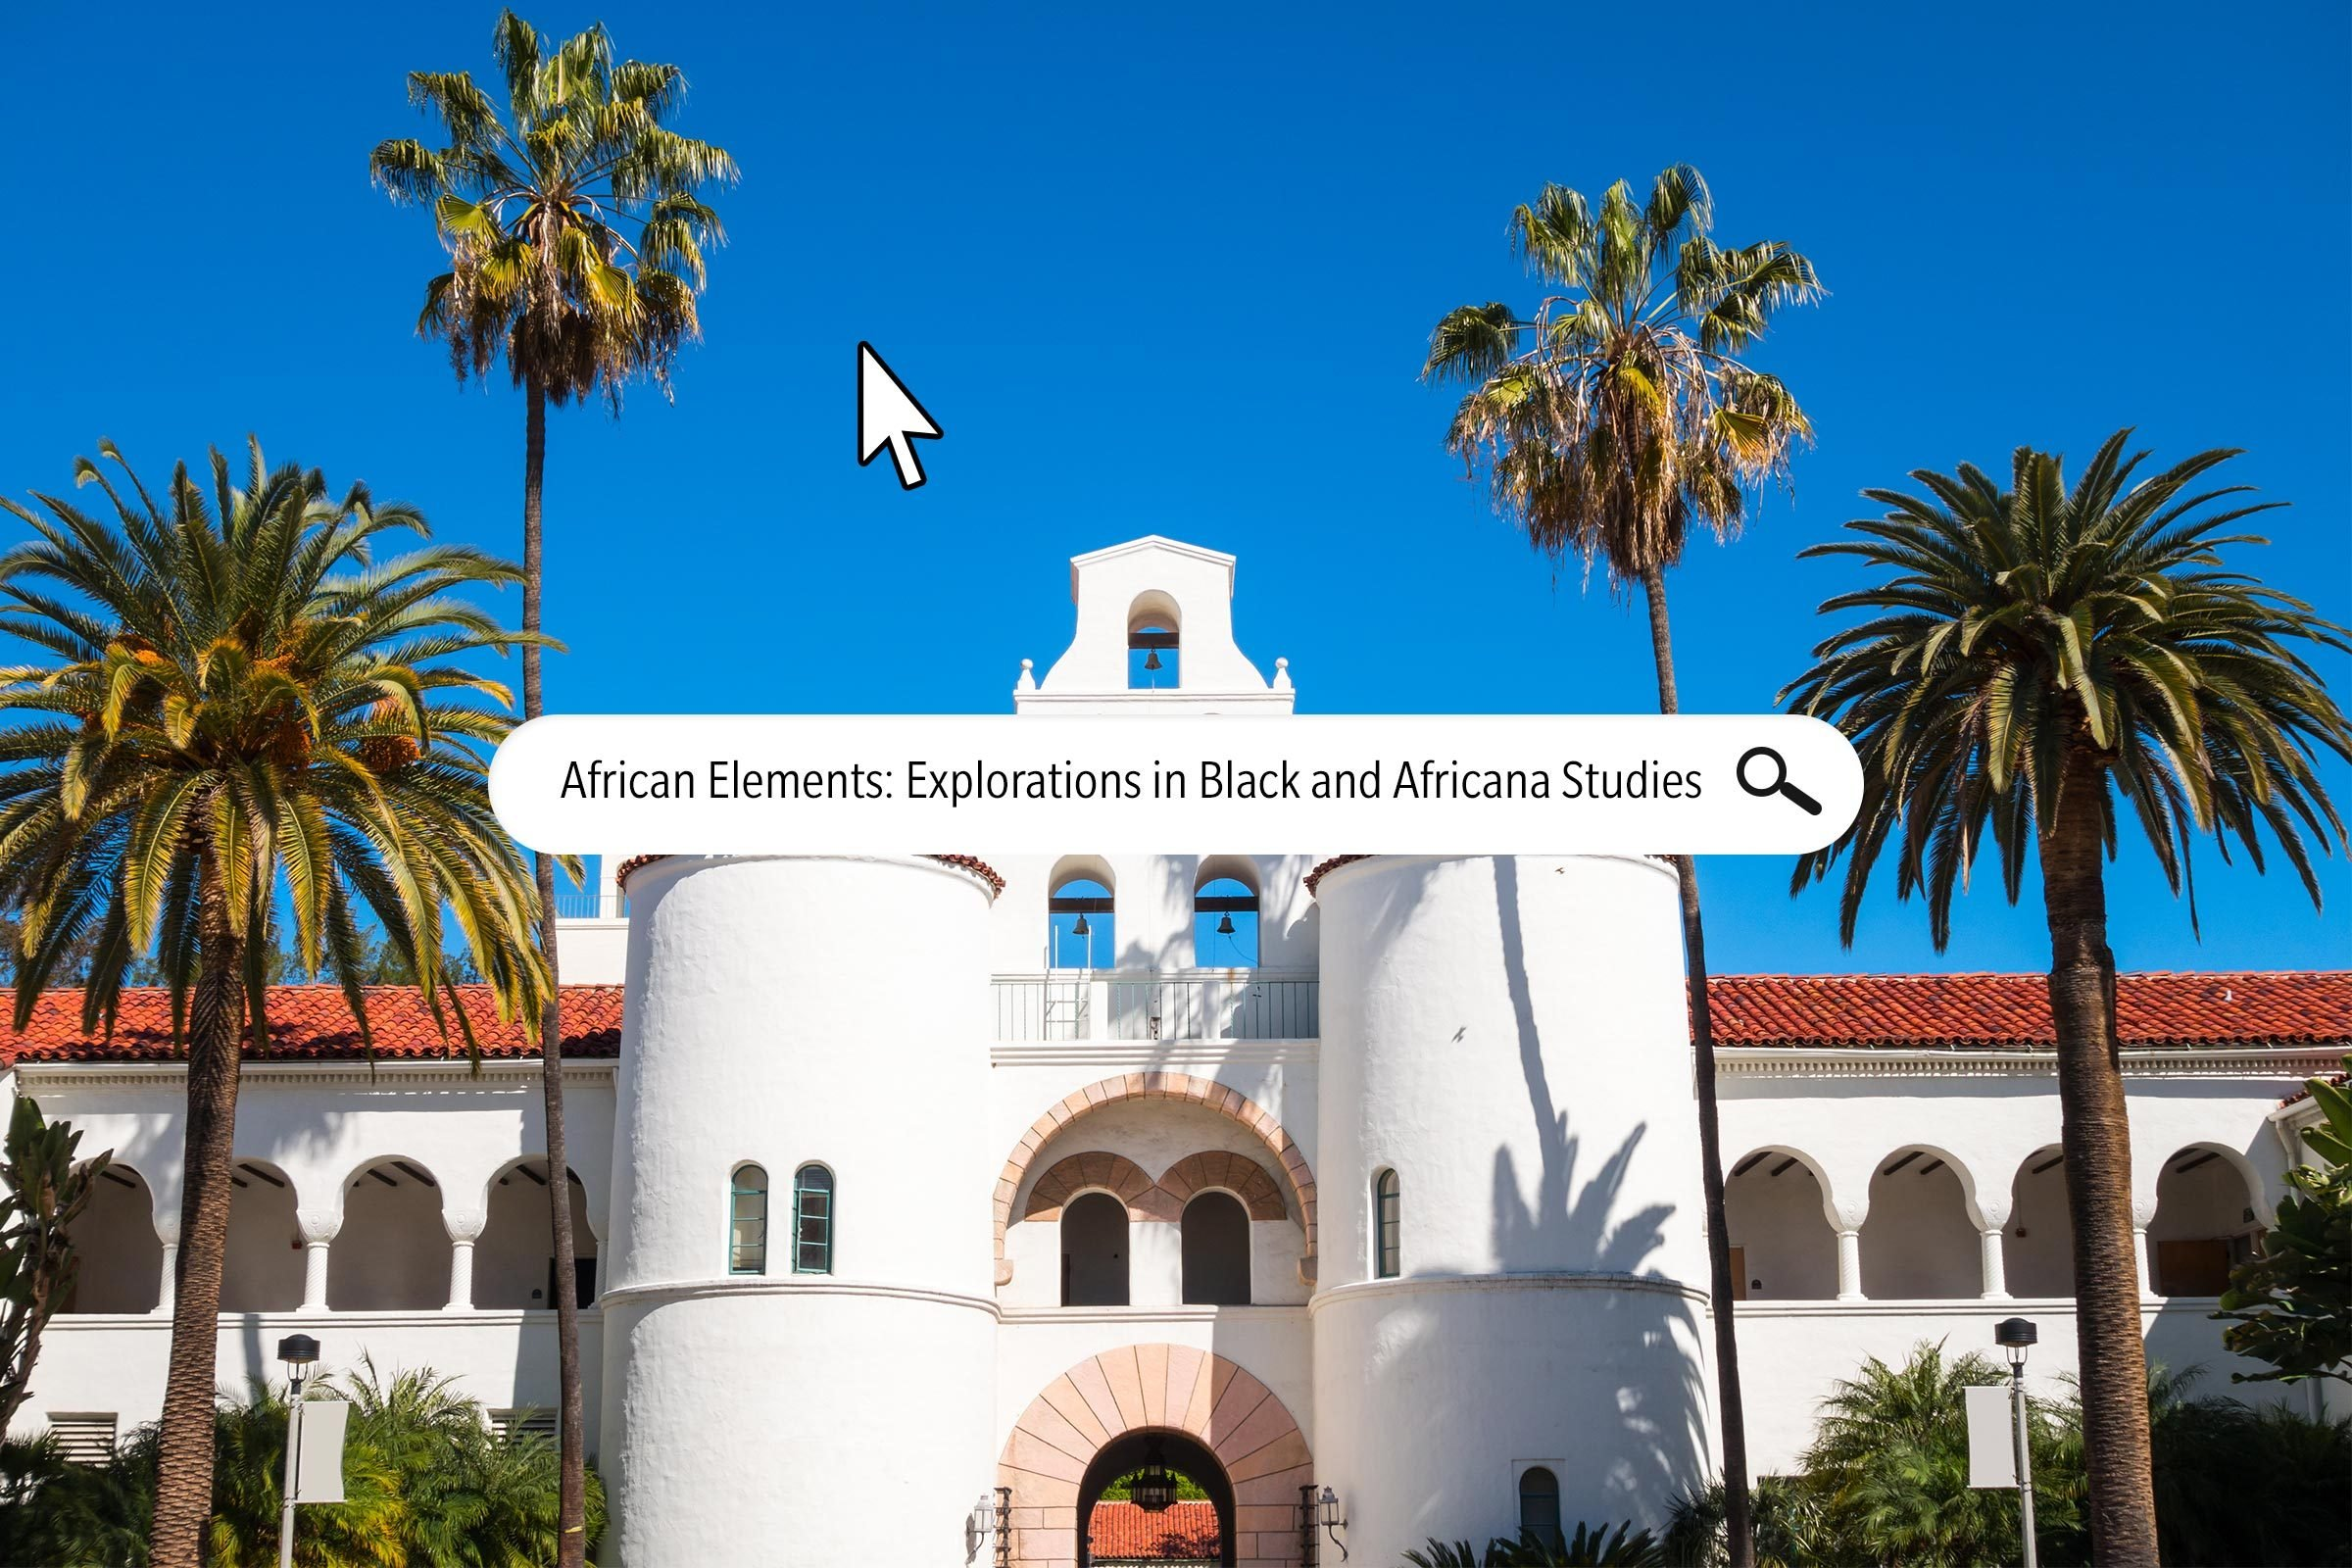 African Elements: Explorations in Black and Africana Studies (San Diego State University)